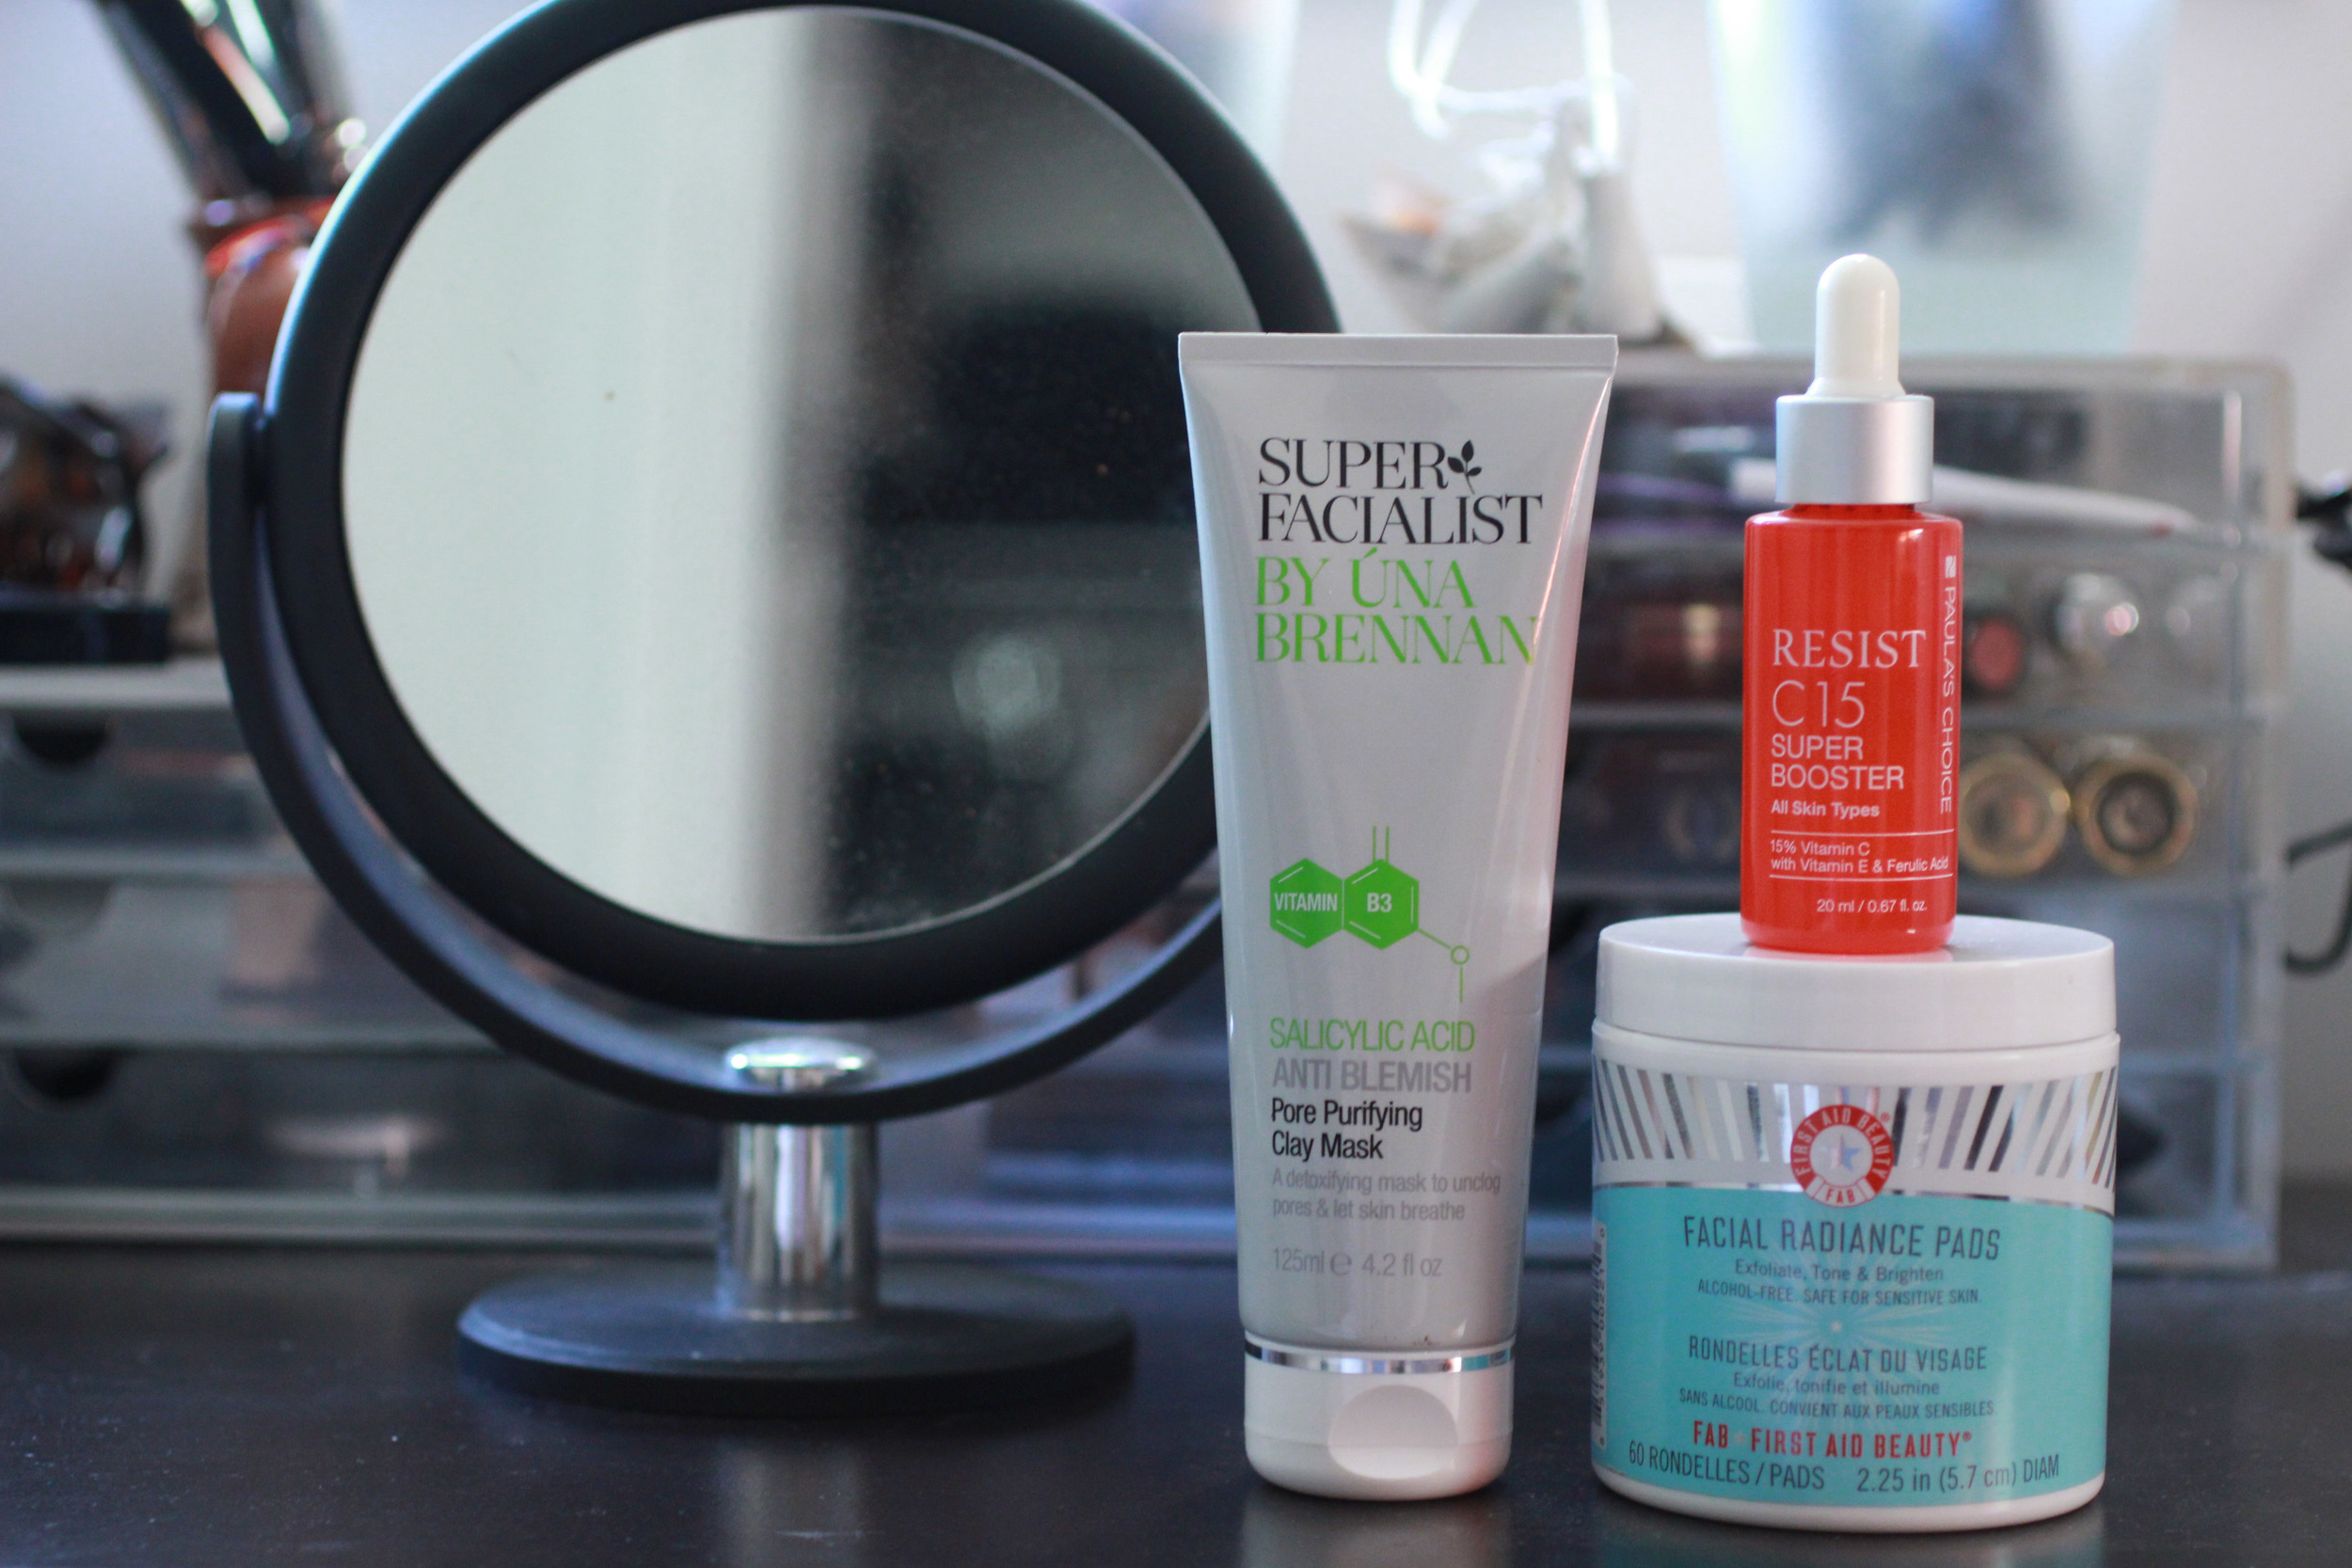 Pore Purifying Clay Mask, C15 Super Booster, Facial Radiance Pads